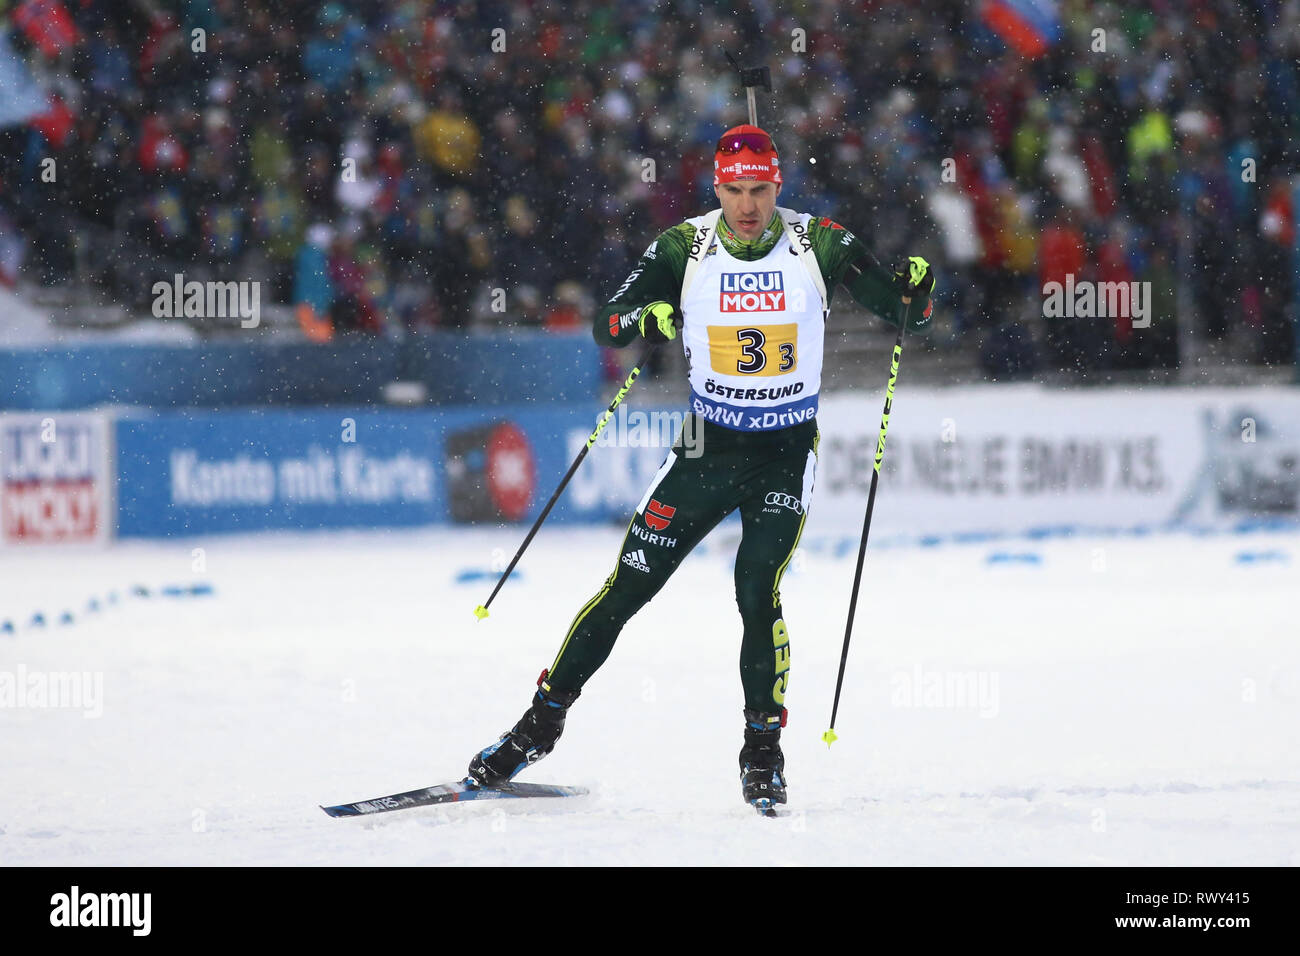 Ostersund, Sweden. 7th Mar, 2019. IBU World Championships Biathlon, mixed relay; Arnd Peiffer (GER) in action Credit: Action Plus Sports/Alamy Live News - Stock Image